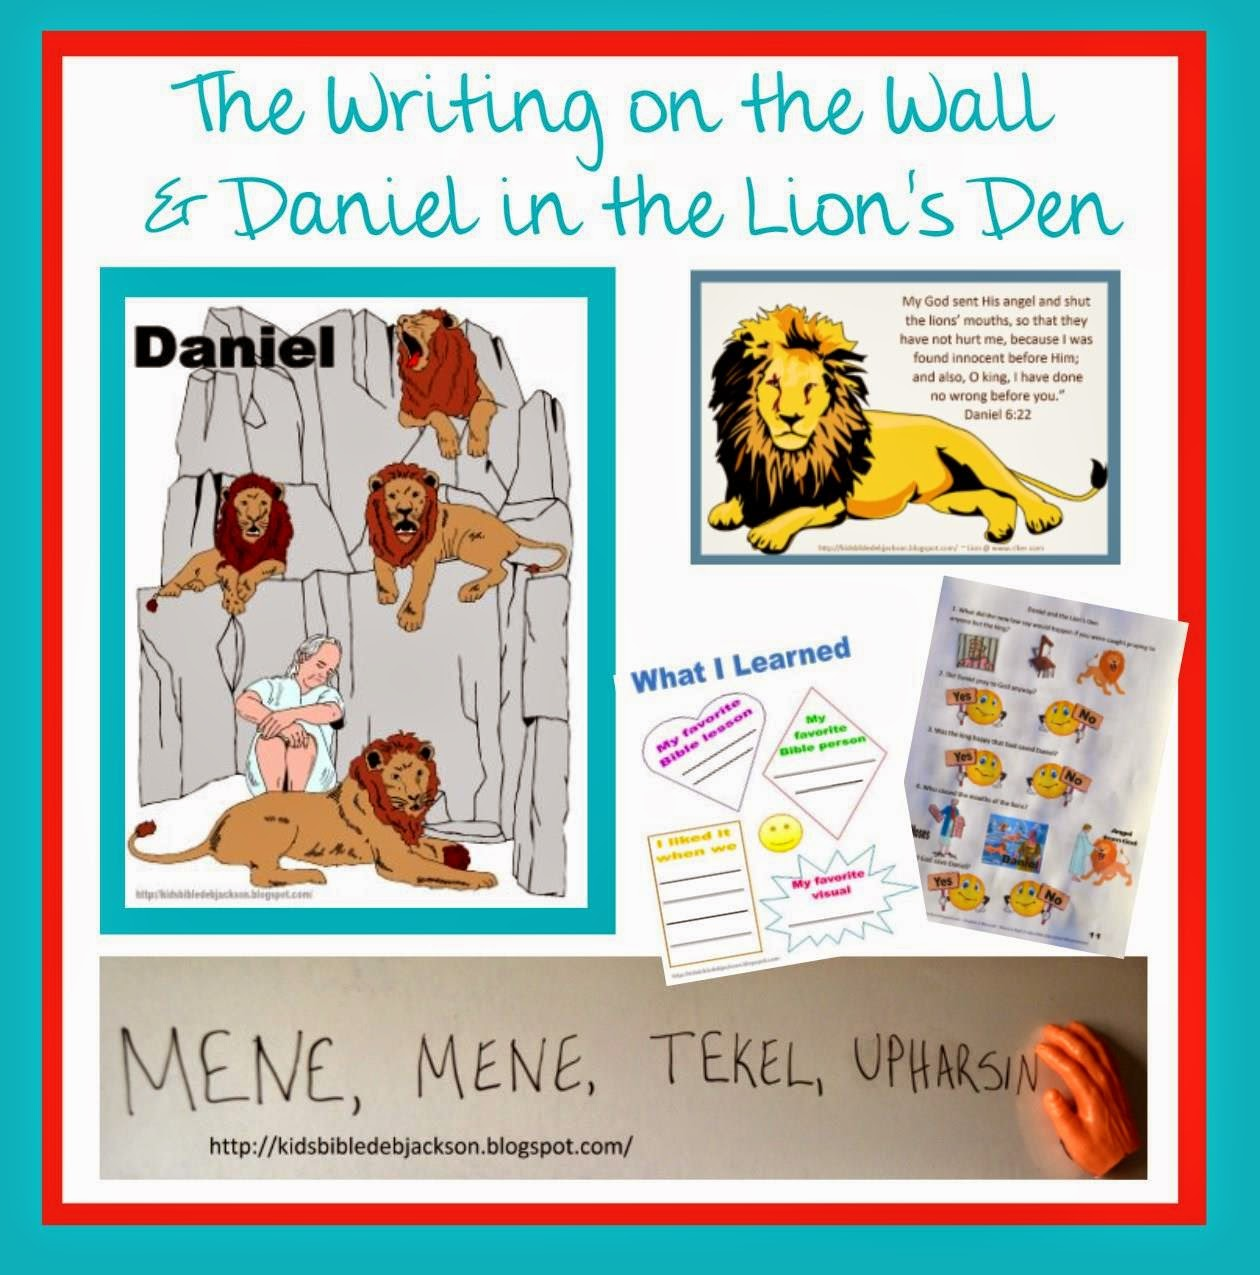 http://kidsbibledebjackson.blogspot.com/2014/05/daniel-writing-on-wall-lions-den.html